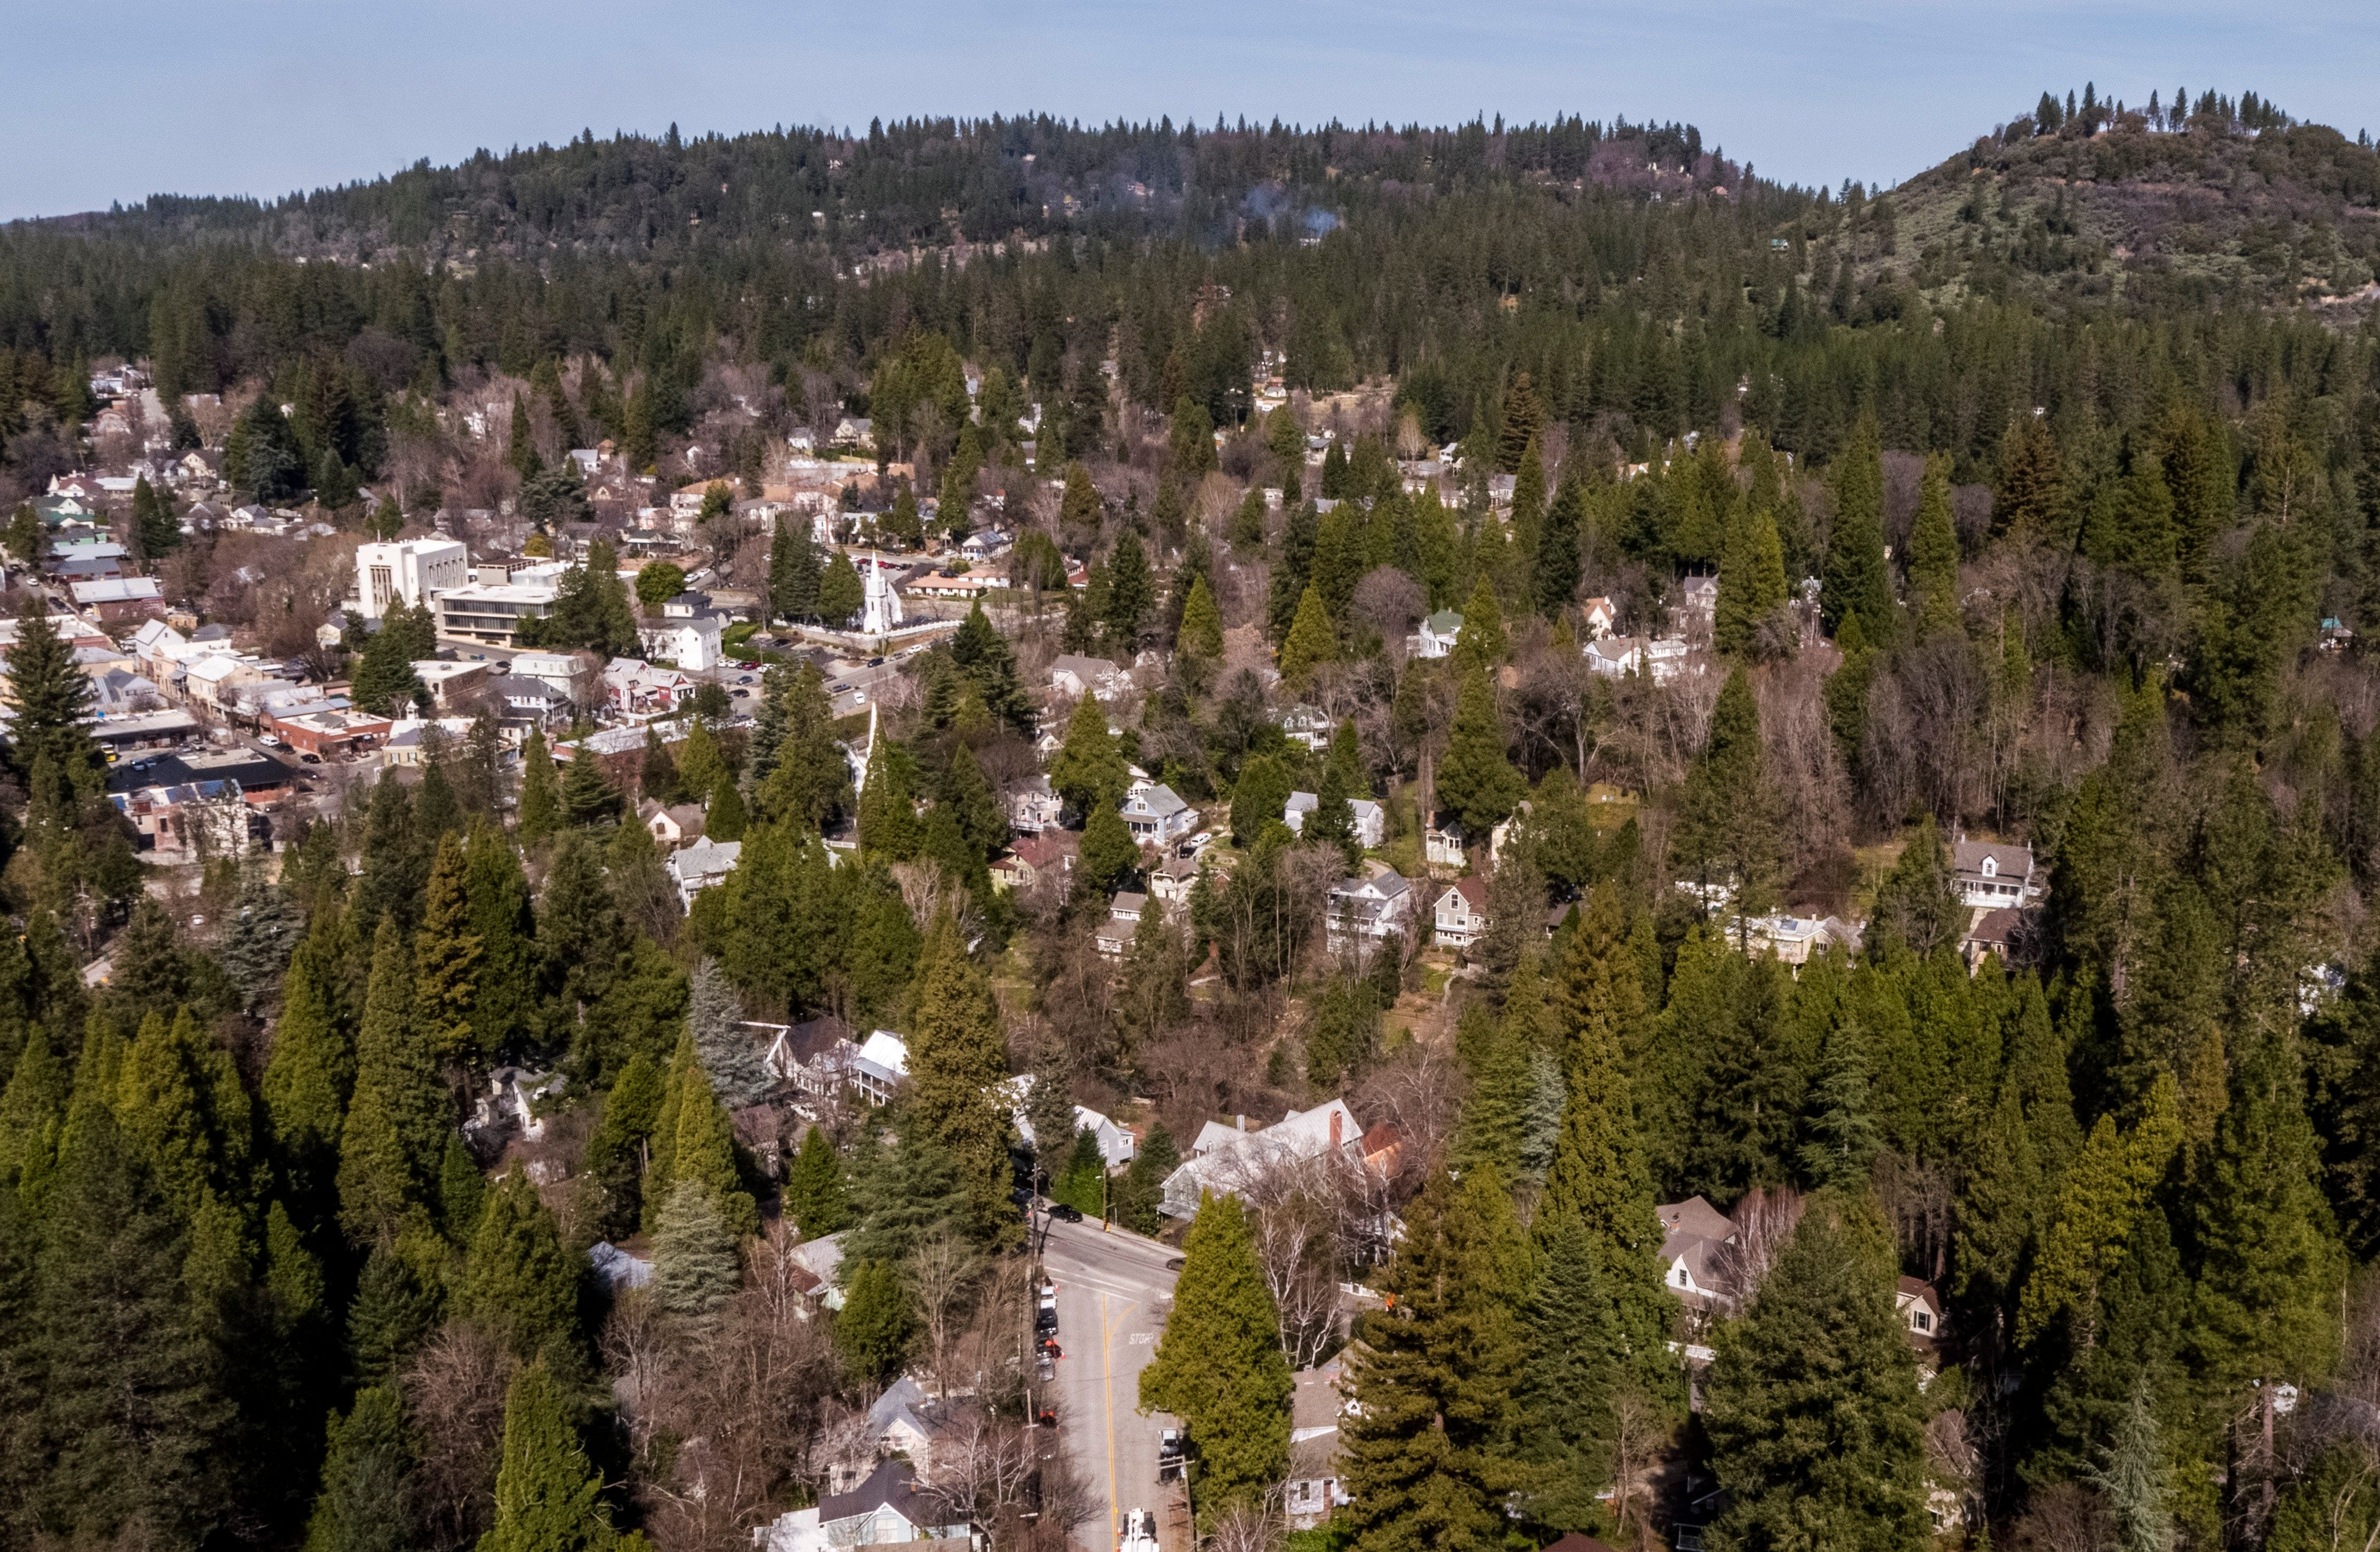 Downtown Nevada City, seen on on Thursday, March 14, 2019, is surrounded by a dense forested area, which increases its fire risk.